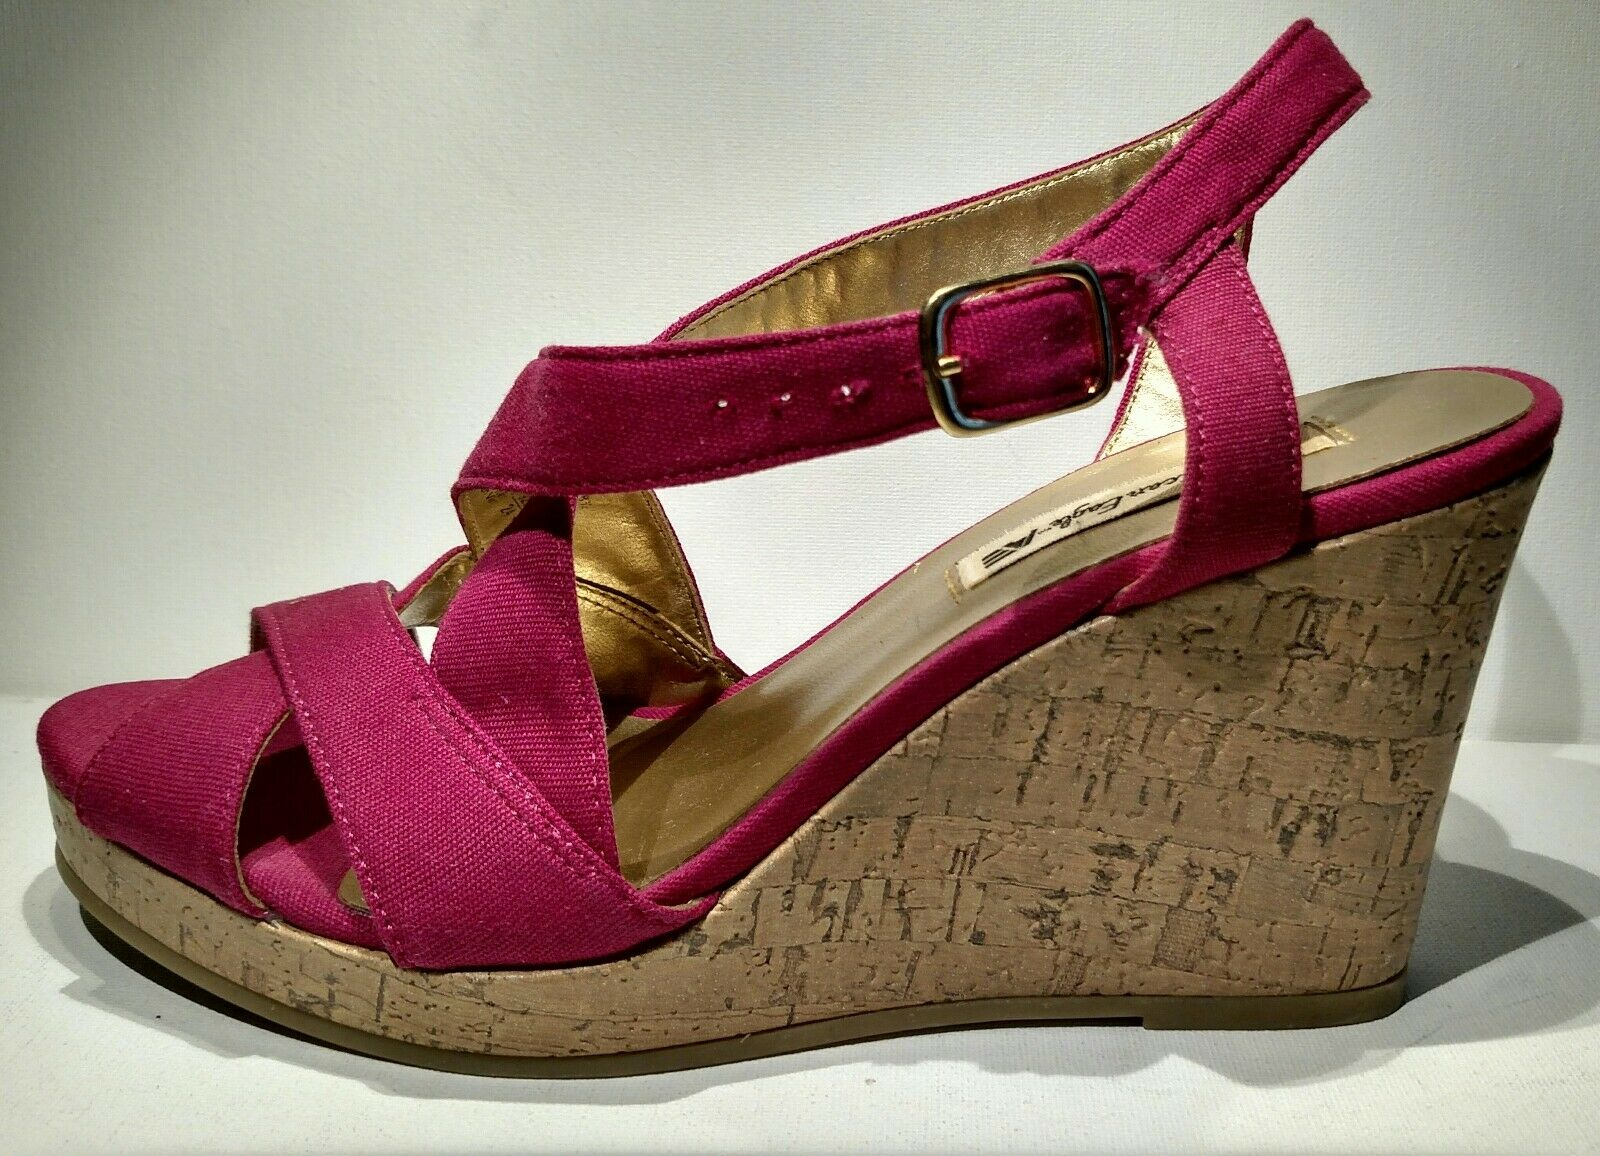 AMERICAN material EAGLE Sz7 canvas pink material AMERICAN sandal 4inch wedge used 1 time e64560